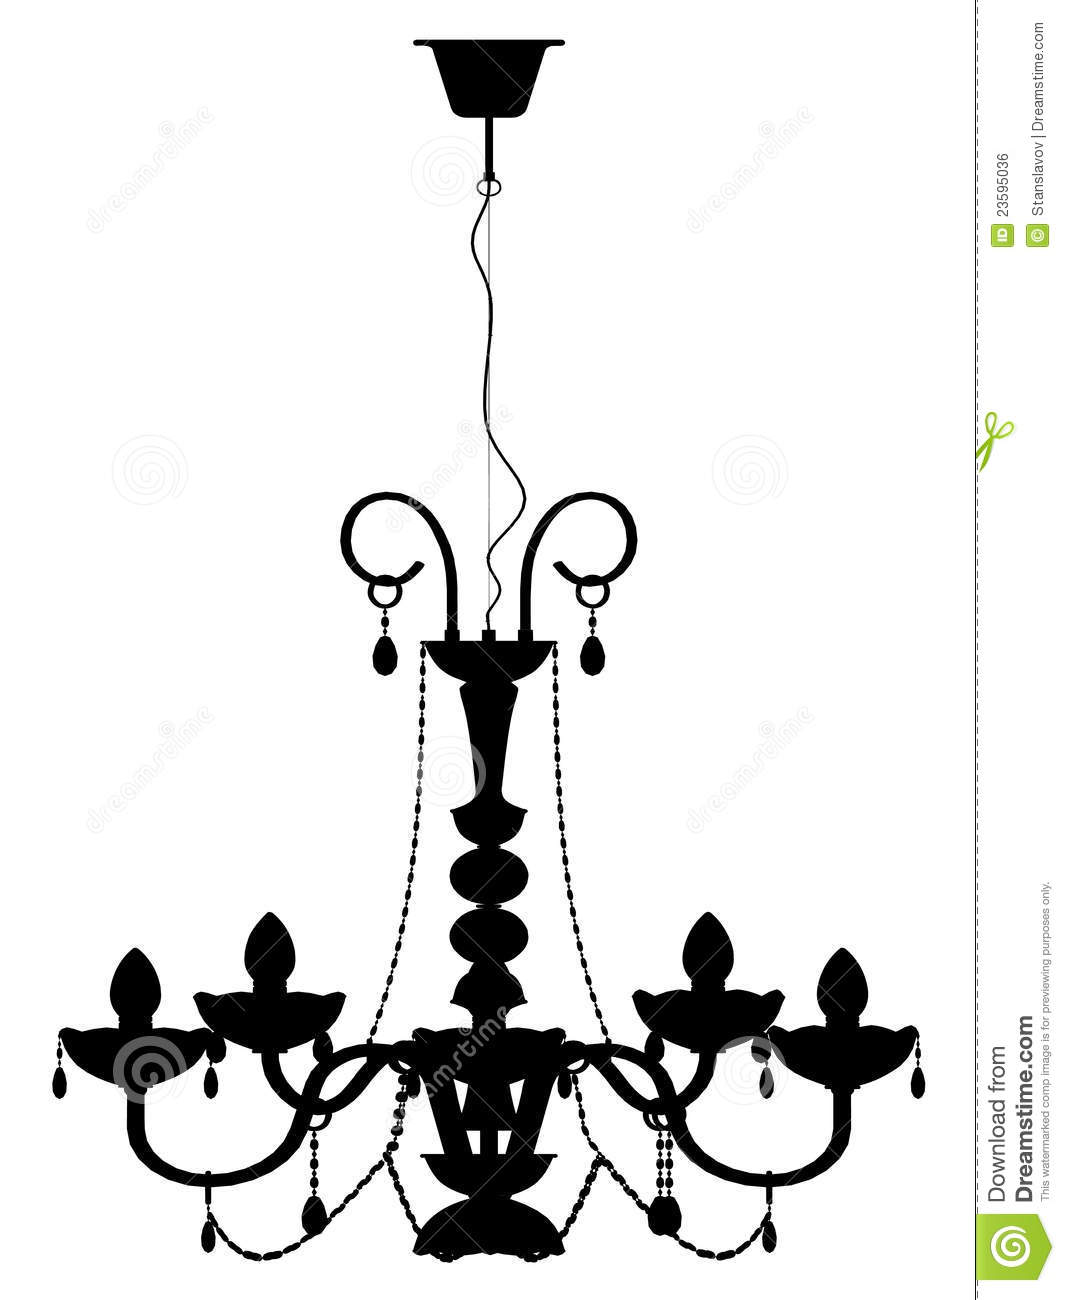 Chandelier Lamp Outline Silhouette Royalty Free Stock